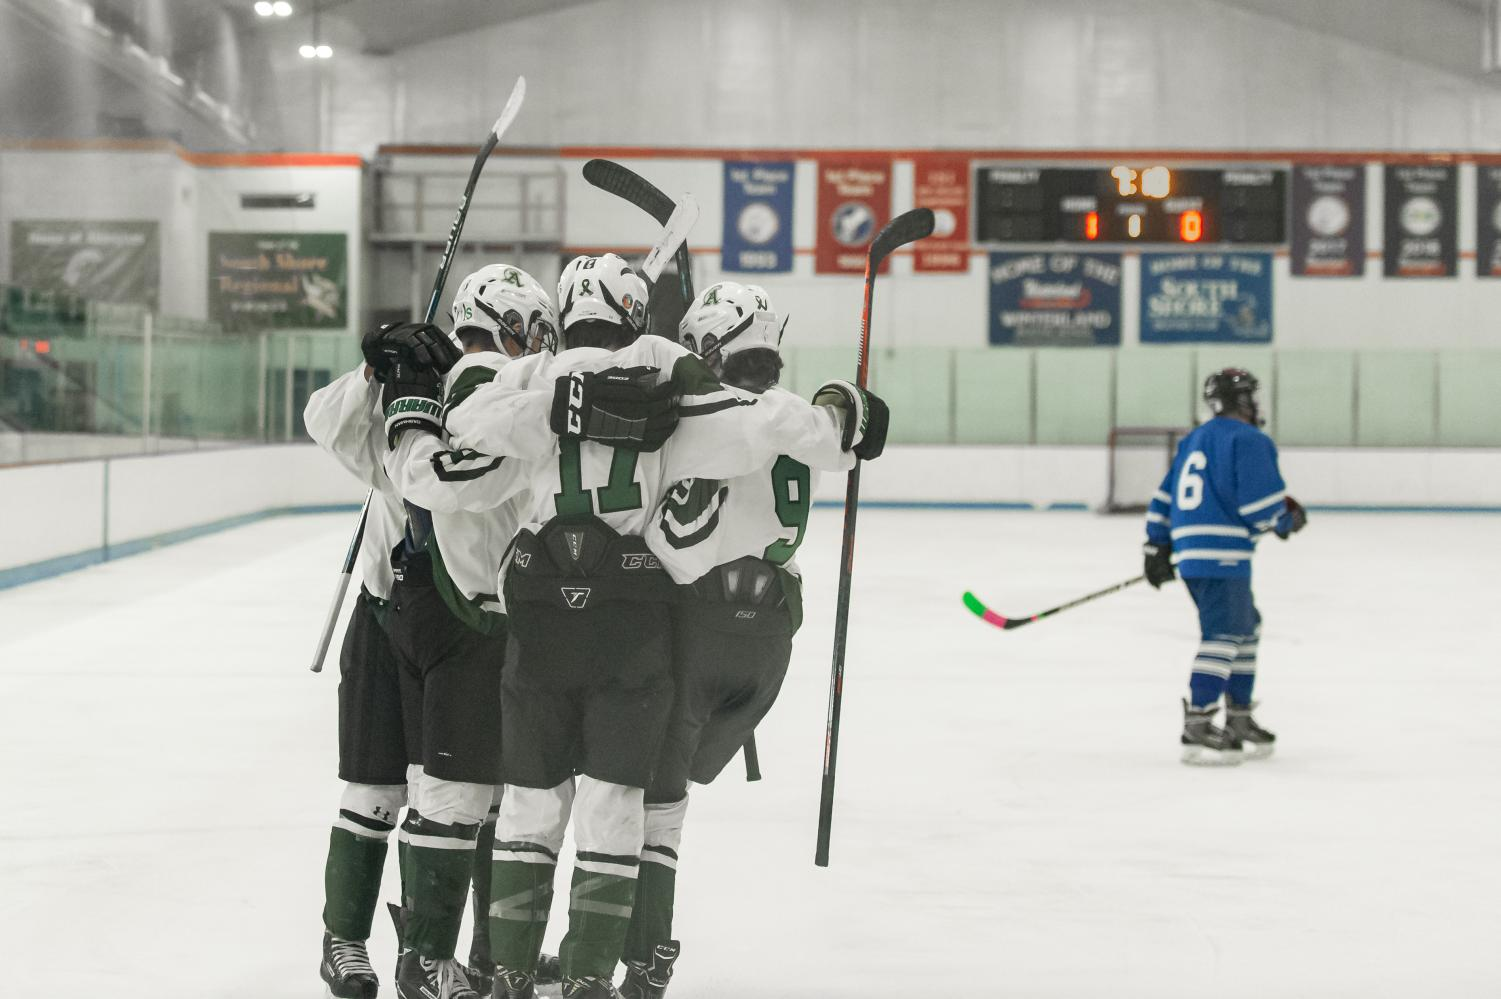 Abington celebrates a goal during the game against Sacred Heart on January 20, 2020 at the Rockland Rink.